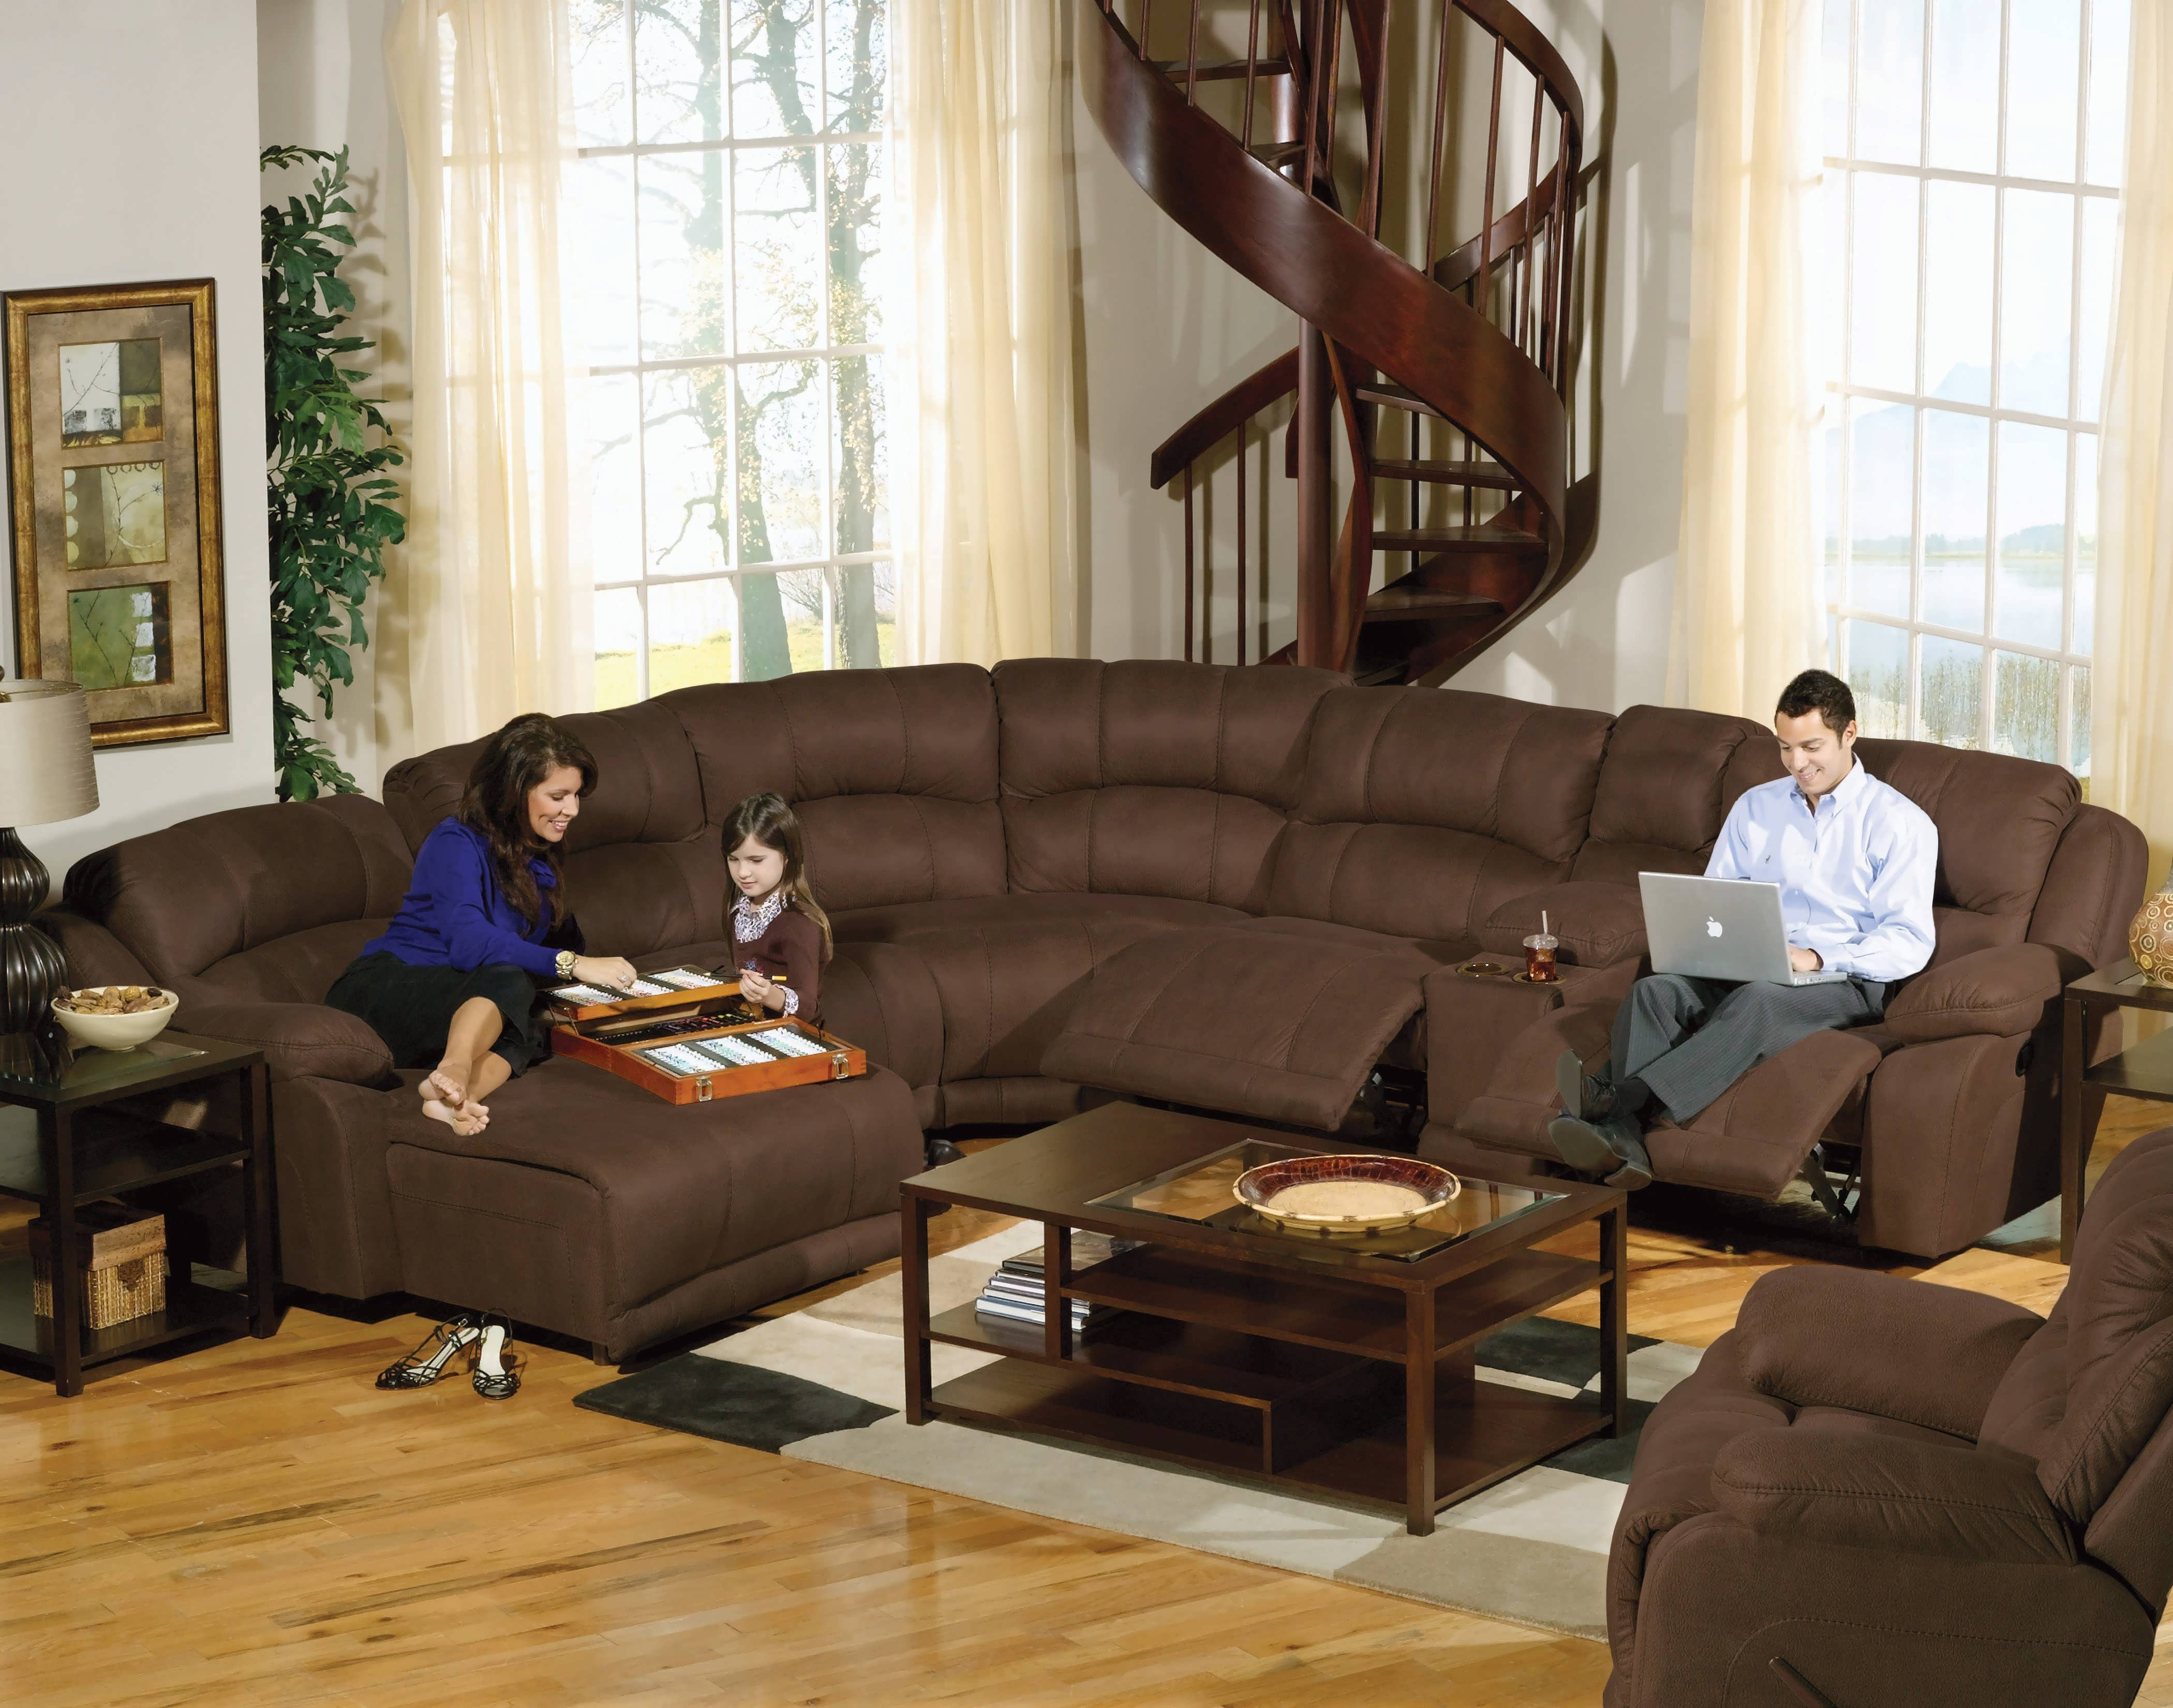 2017 Sofa : Leather Sectional Sofa With Chaise Huge Sectional Sofas With Regard To Sectional Sofas With Recliners And Chaise (View 12 of 15)